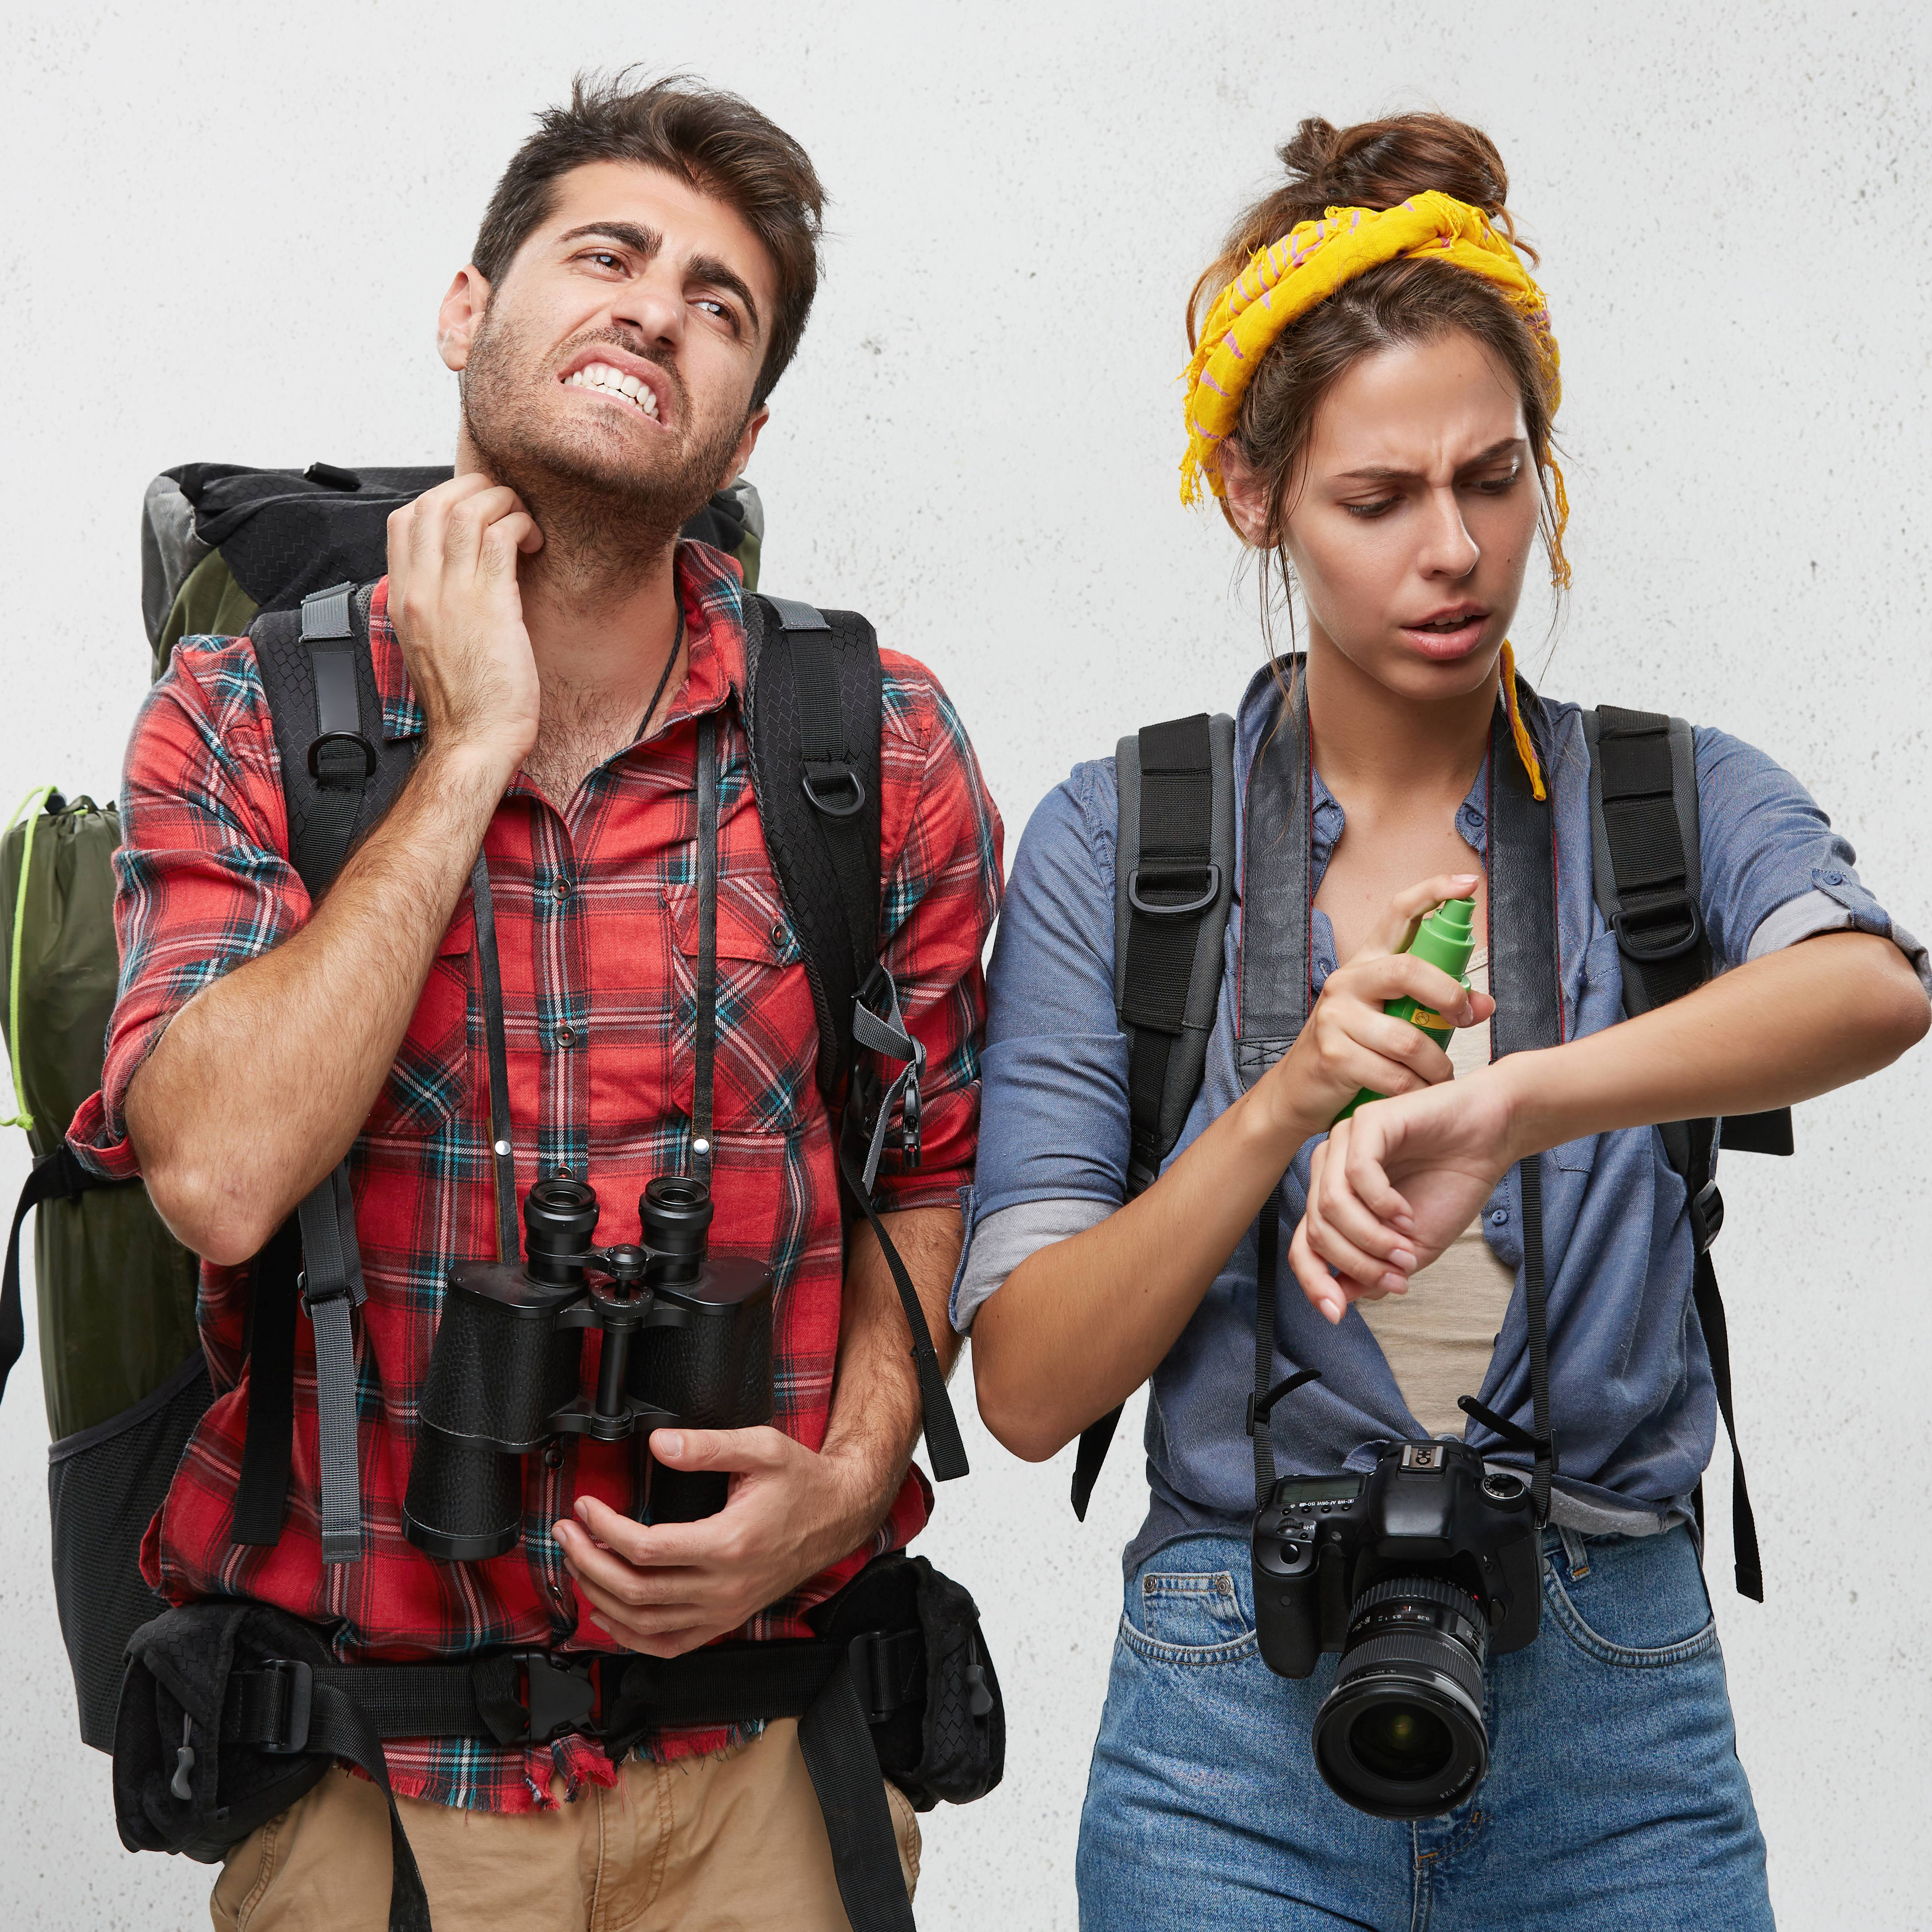 a young couple dressed in hiking or camping clothes, looking distressed, scratching at insect bites